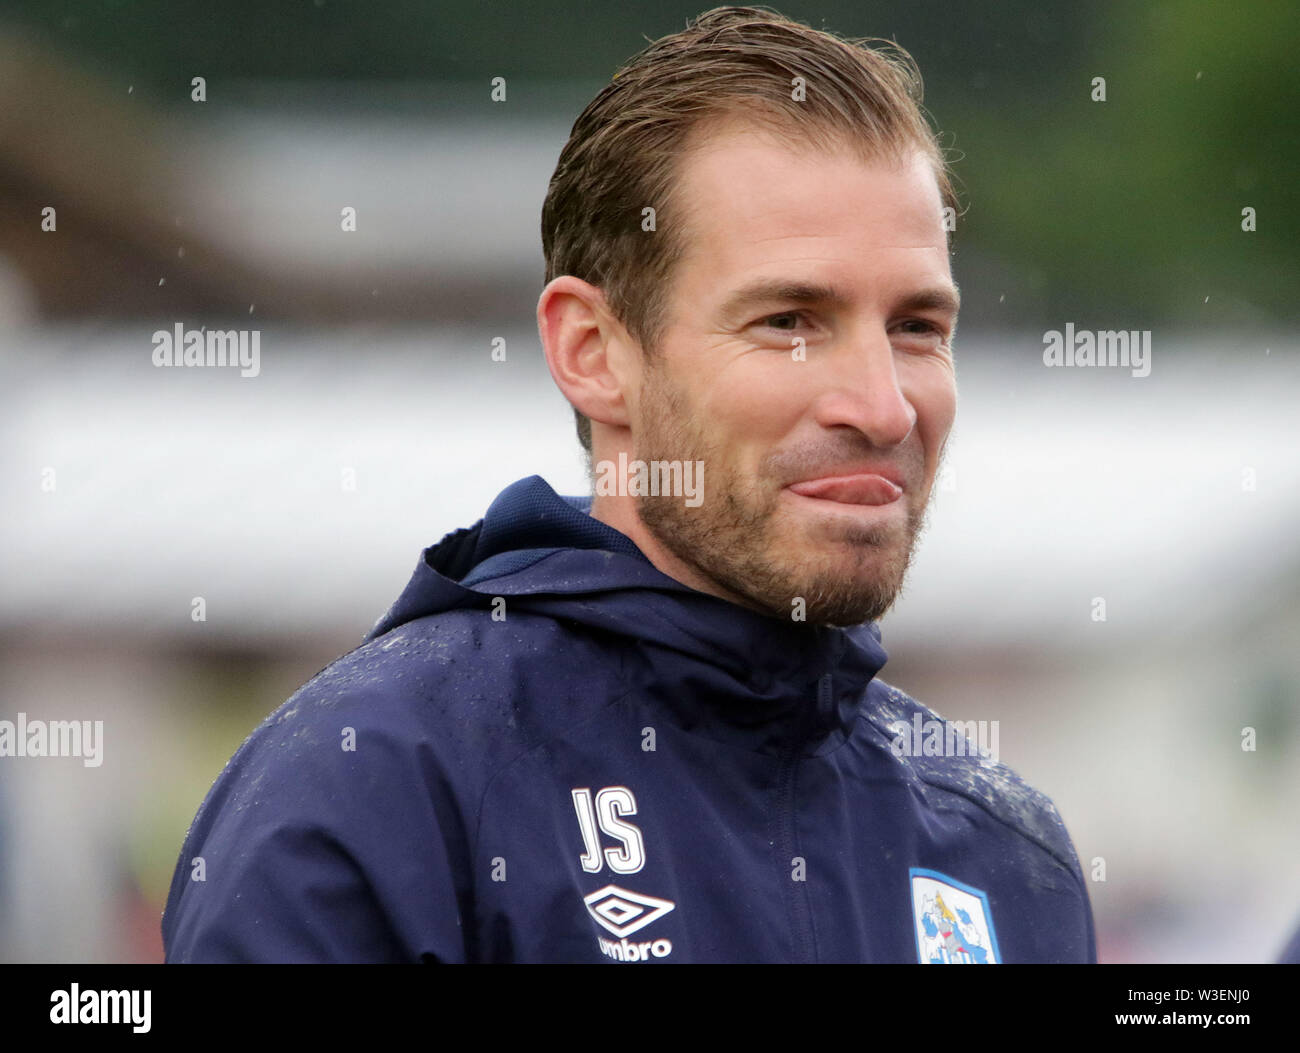 July 13, 2019 - Kitzbuehel, Austria - manager Jan Siewert (Huddersfield), after the victory.pre season friendly 2019/20, .Huddersfield Town FC vs Hamburger SV,.Stadion Kitzbuehel/Austria, July 13, 2019, .Huddersfield Town, the relegated team of the Premiere League wins in a pre season friendly against the former German champion Hamburger SV. (Credit Image: © Wolfgang Fehrmann/ZUMA Wire) - Stock Image